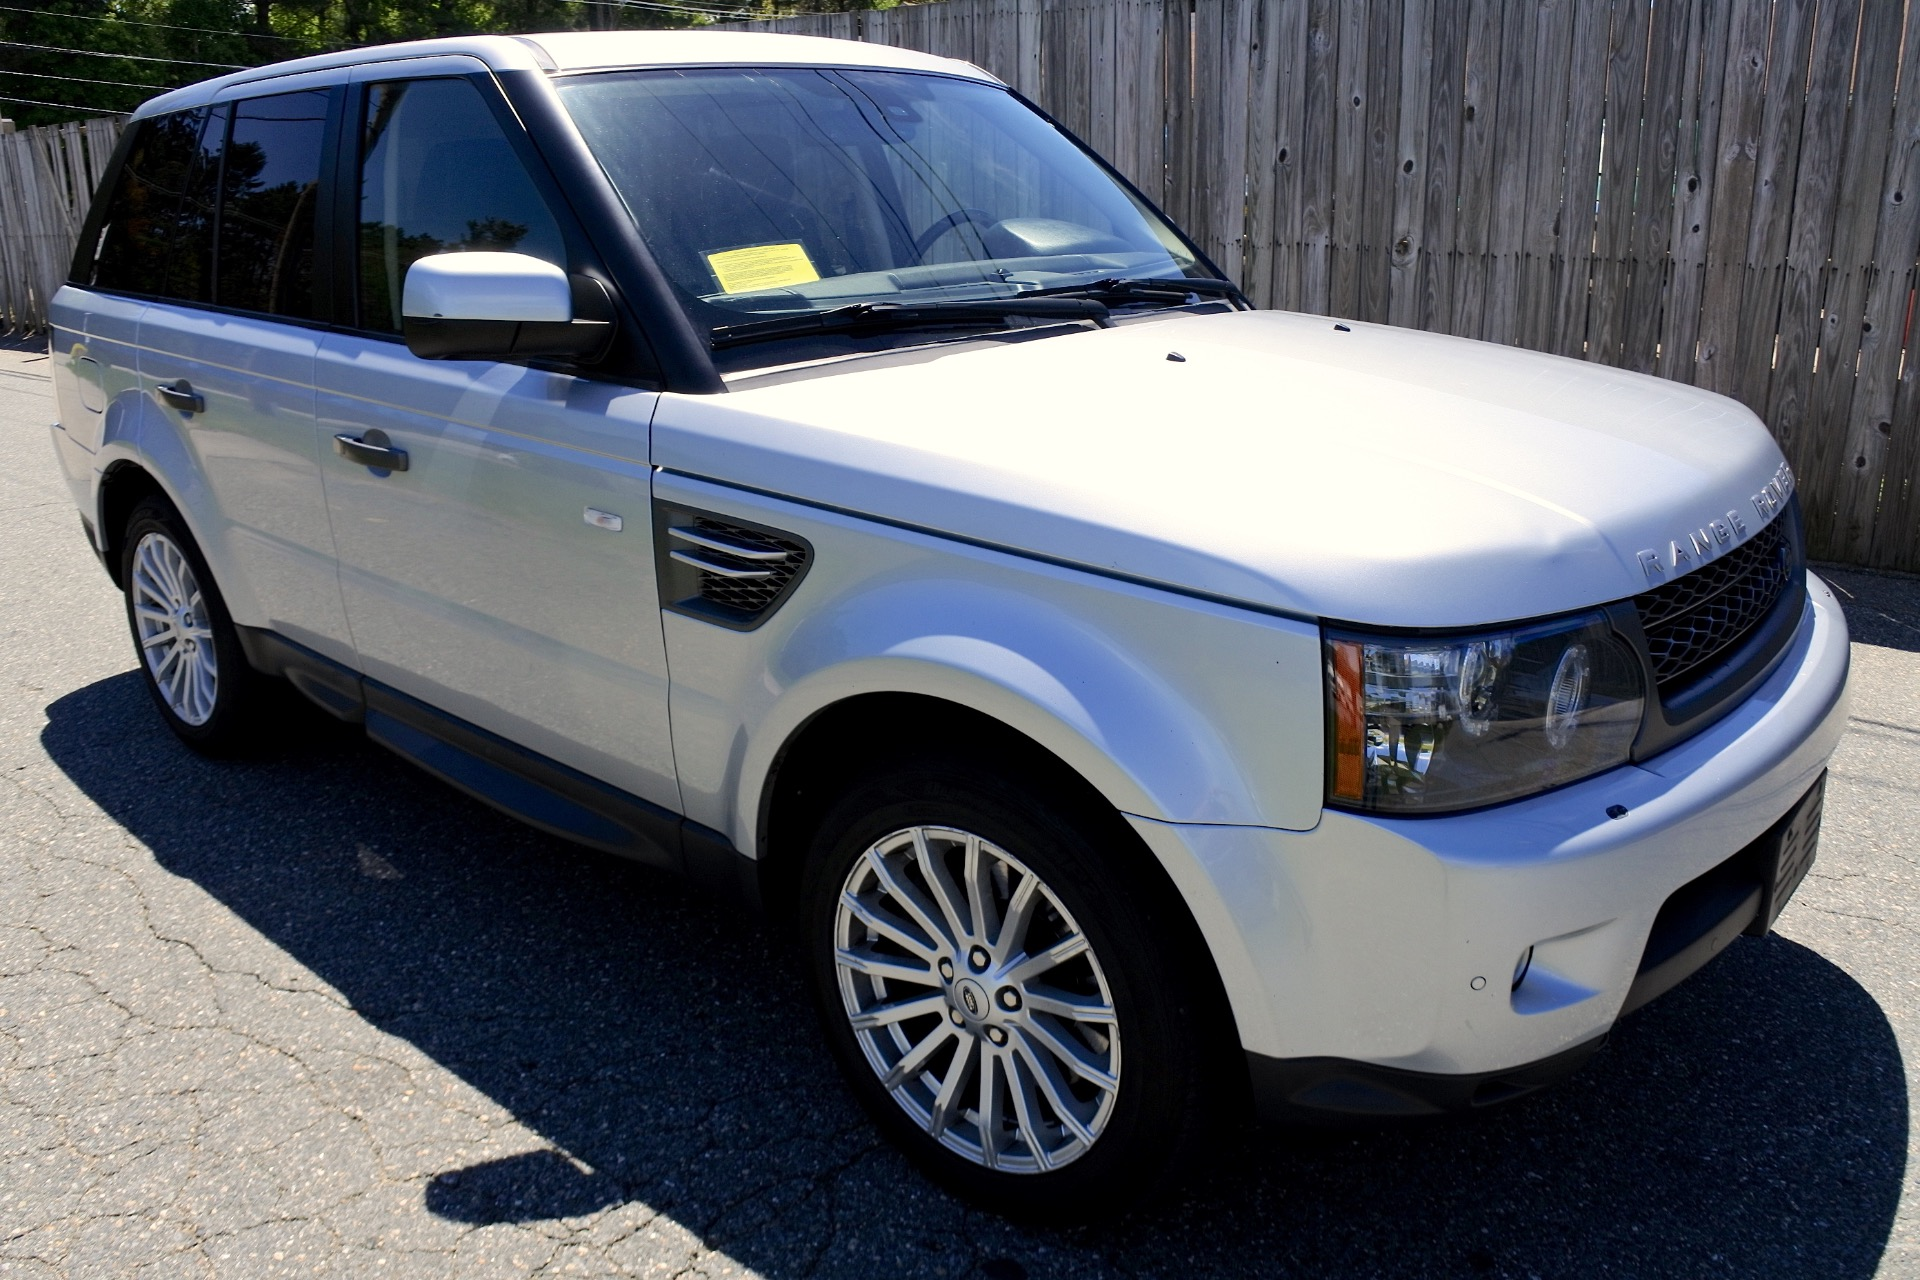 Used 2011 Land Rover Range Rover Sport HSE Used 2011 Land Rover Range Rover Sport HSE for sale  at Metro West Motorcars LLC in Shrewsbury MA 5